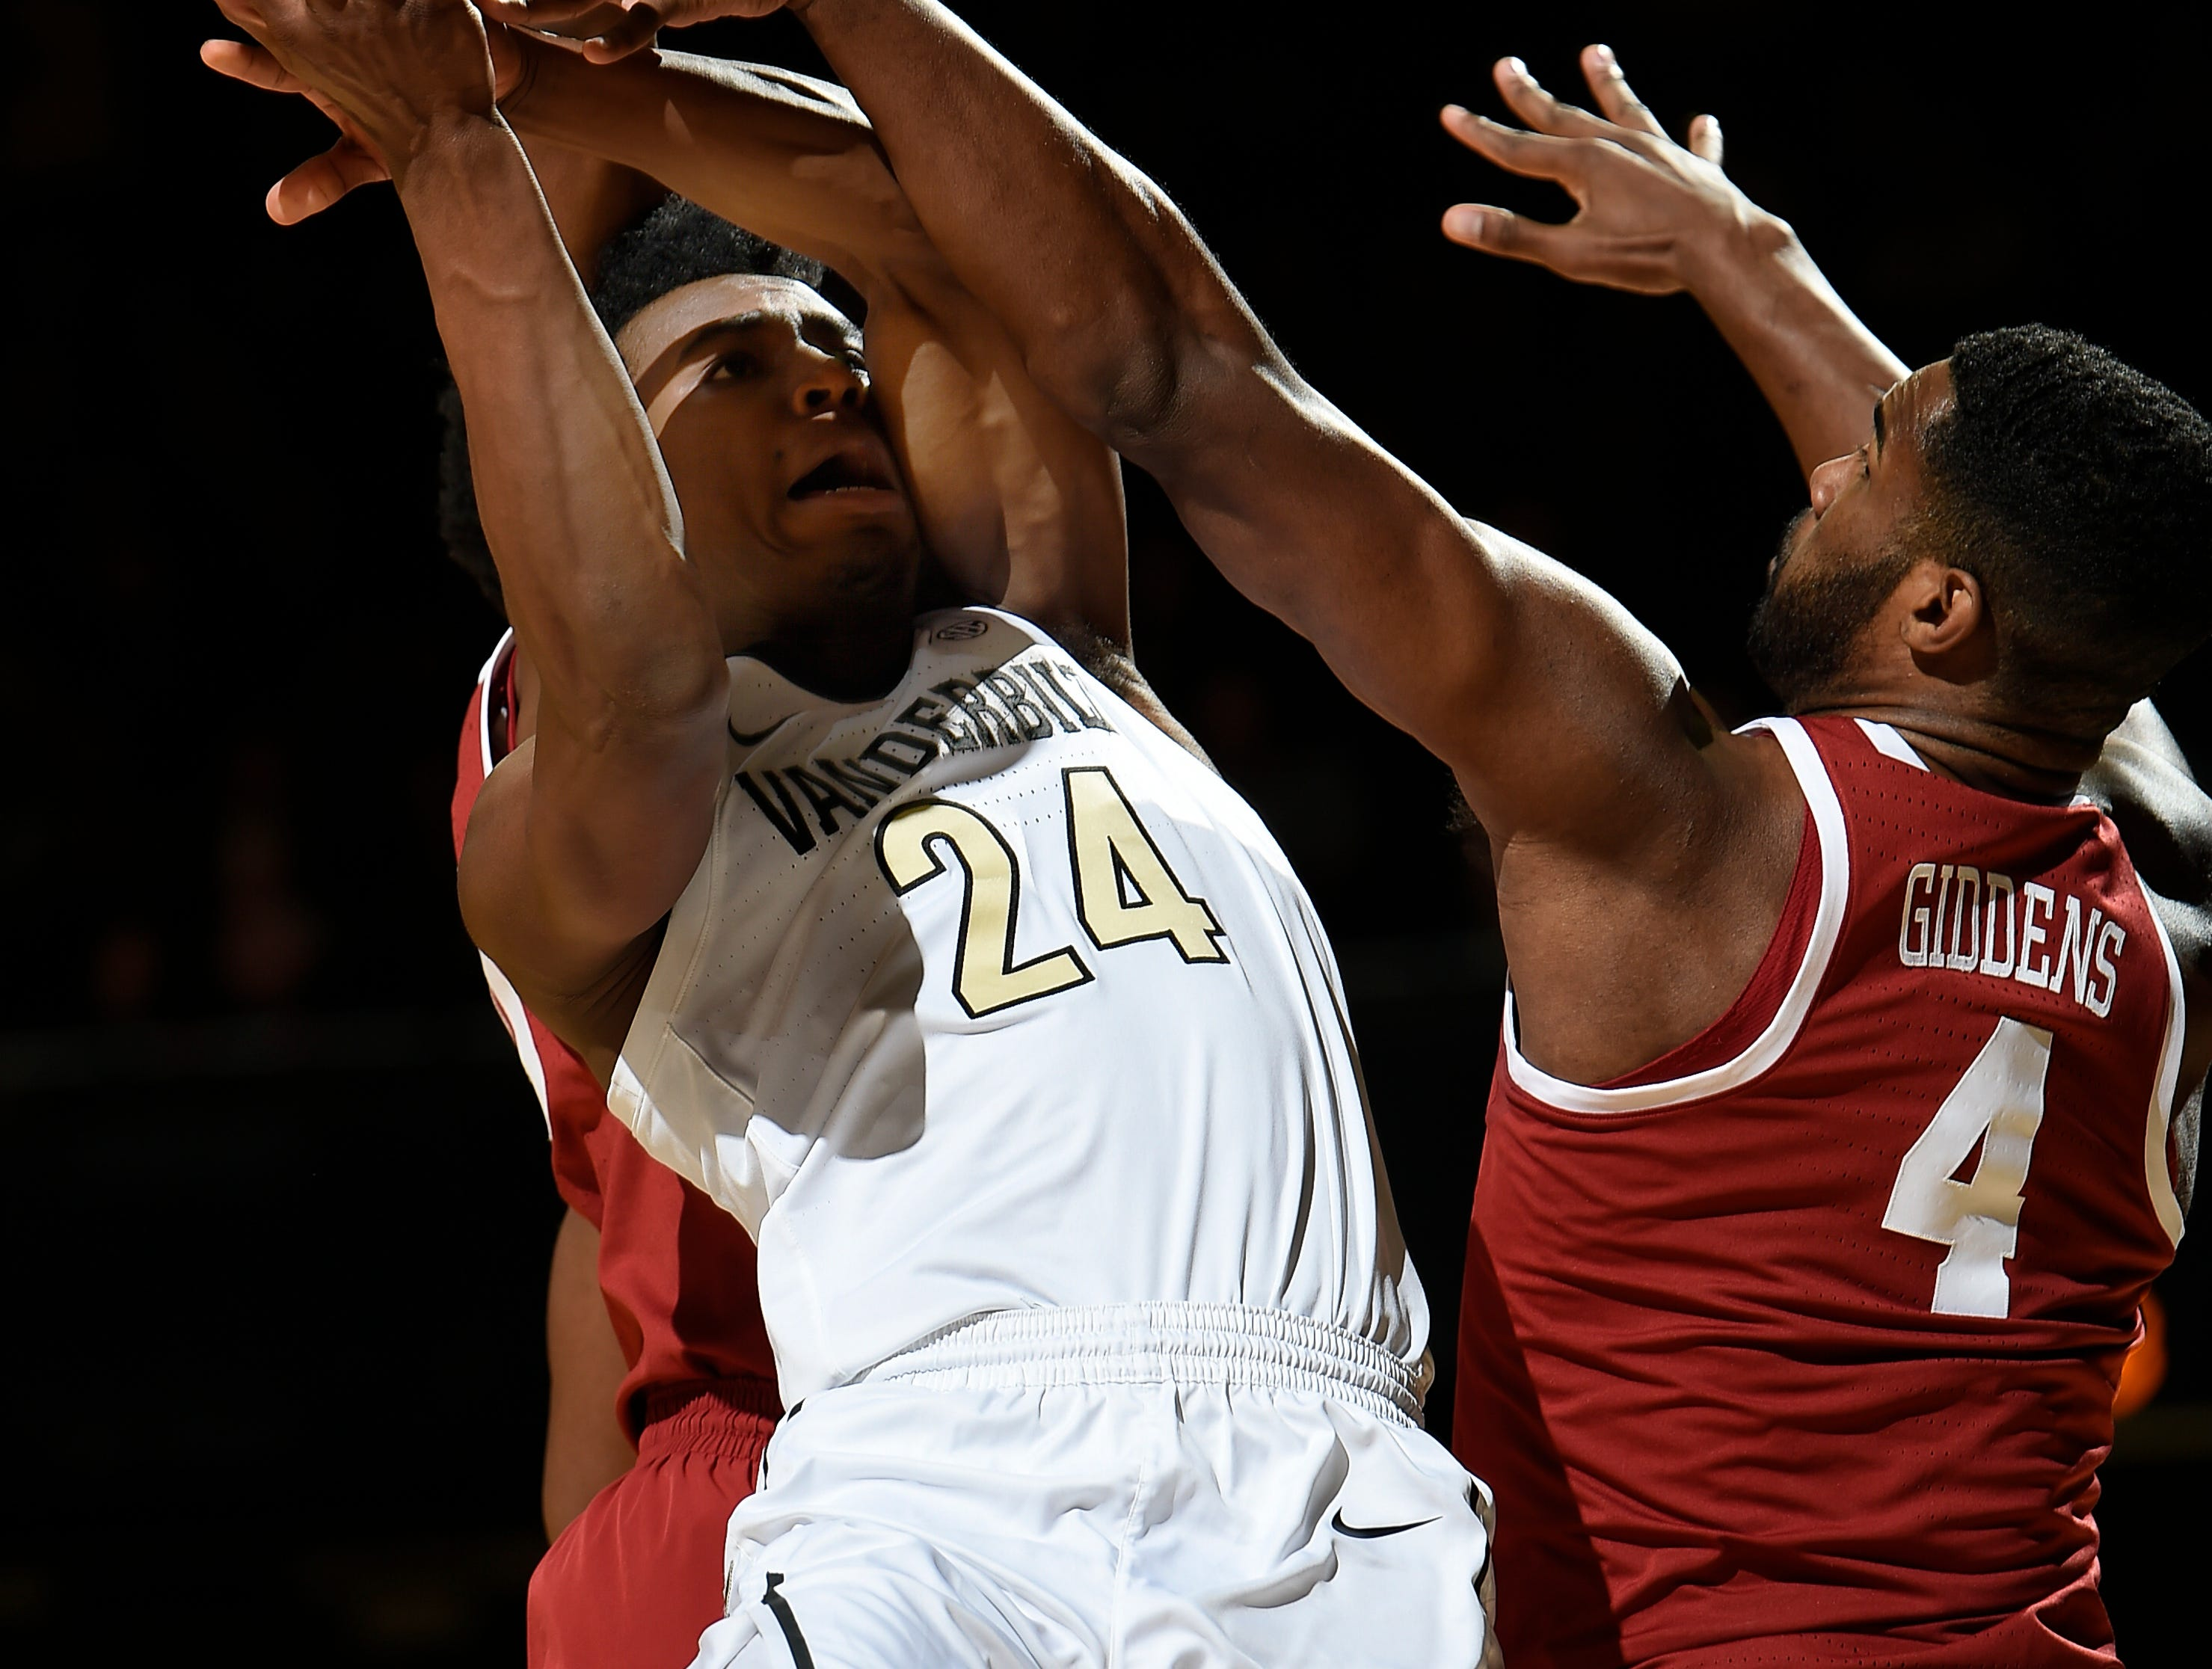 Vanderbilt forward Aaron Nesmith (24) is fouled by Alabama forward Daniel Giddens (4) as he shoots during the first half at Memorial Gym Saturday Feb. 9, 2019 in Nashville, Tenn.